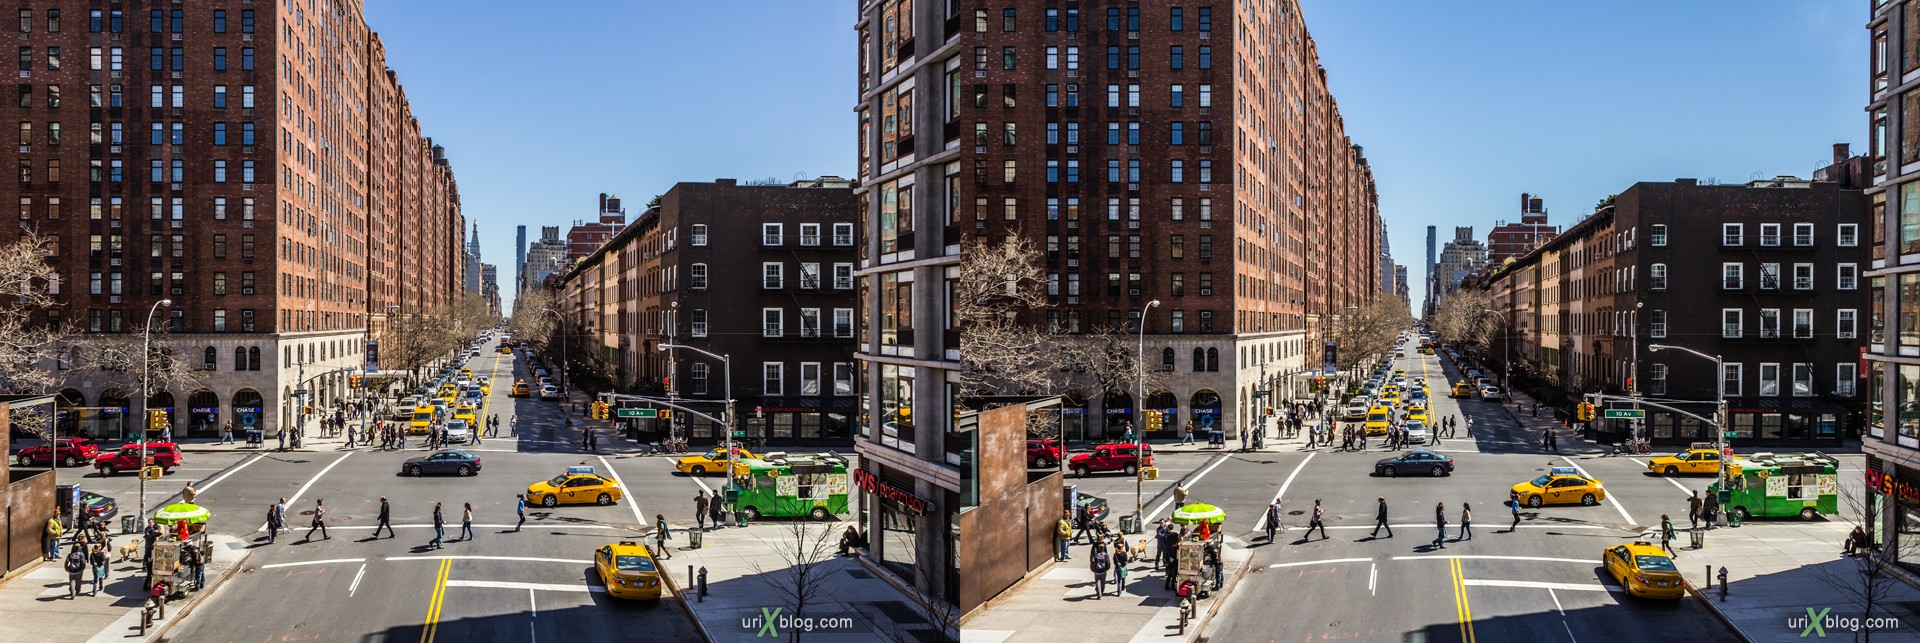 New York City Buildings Street View 3d Stereoscopic Photos From All